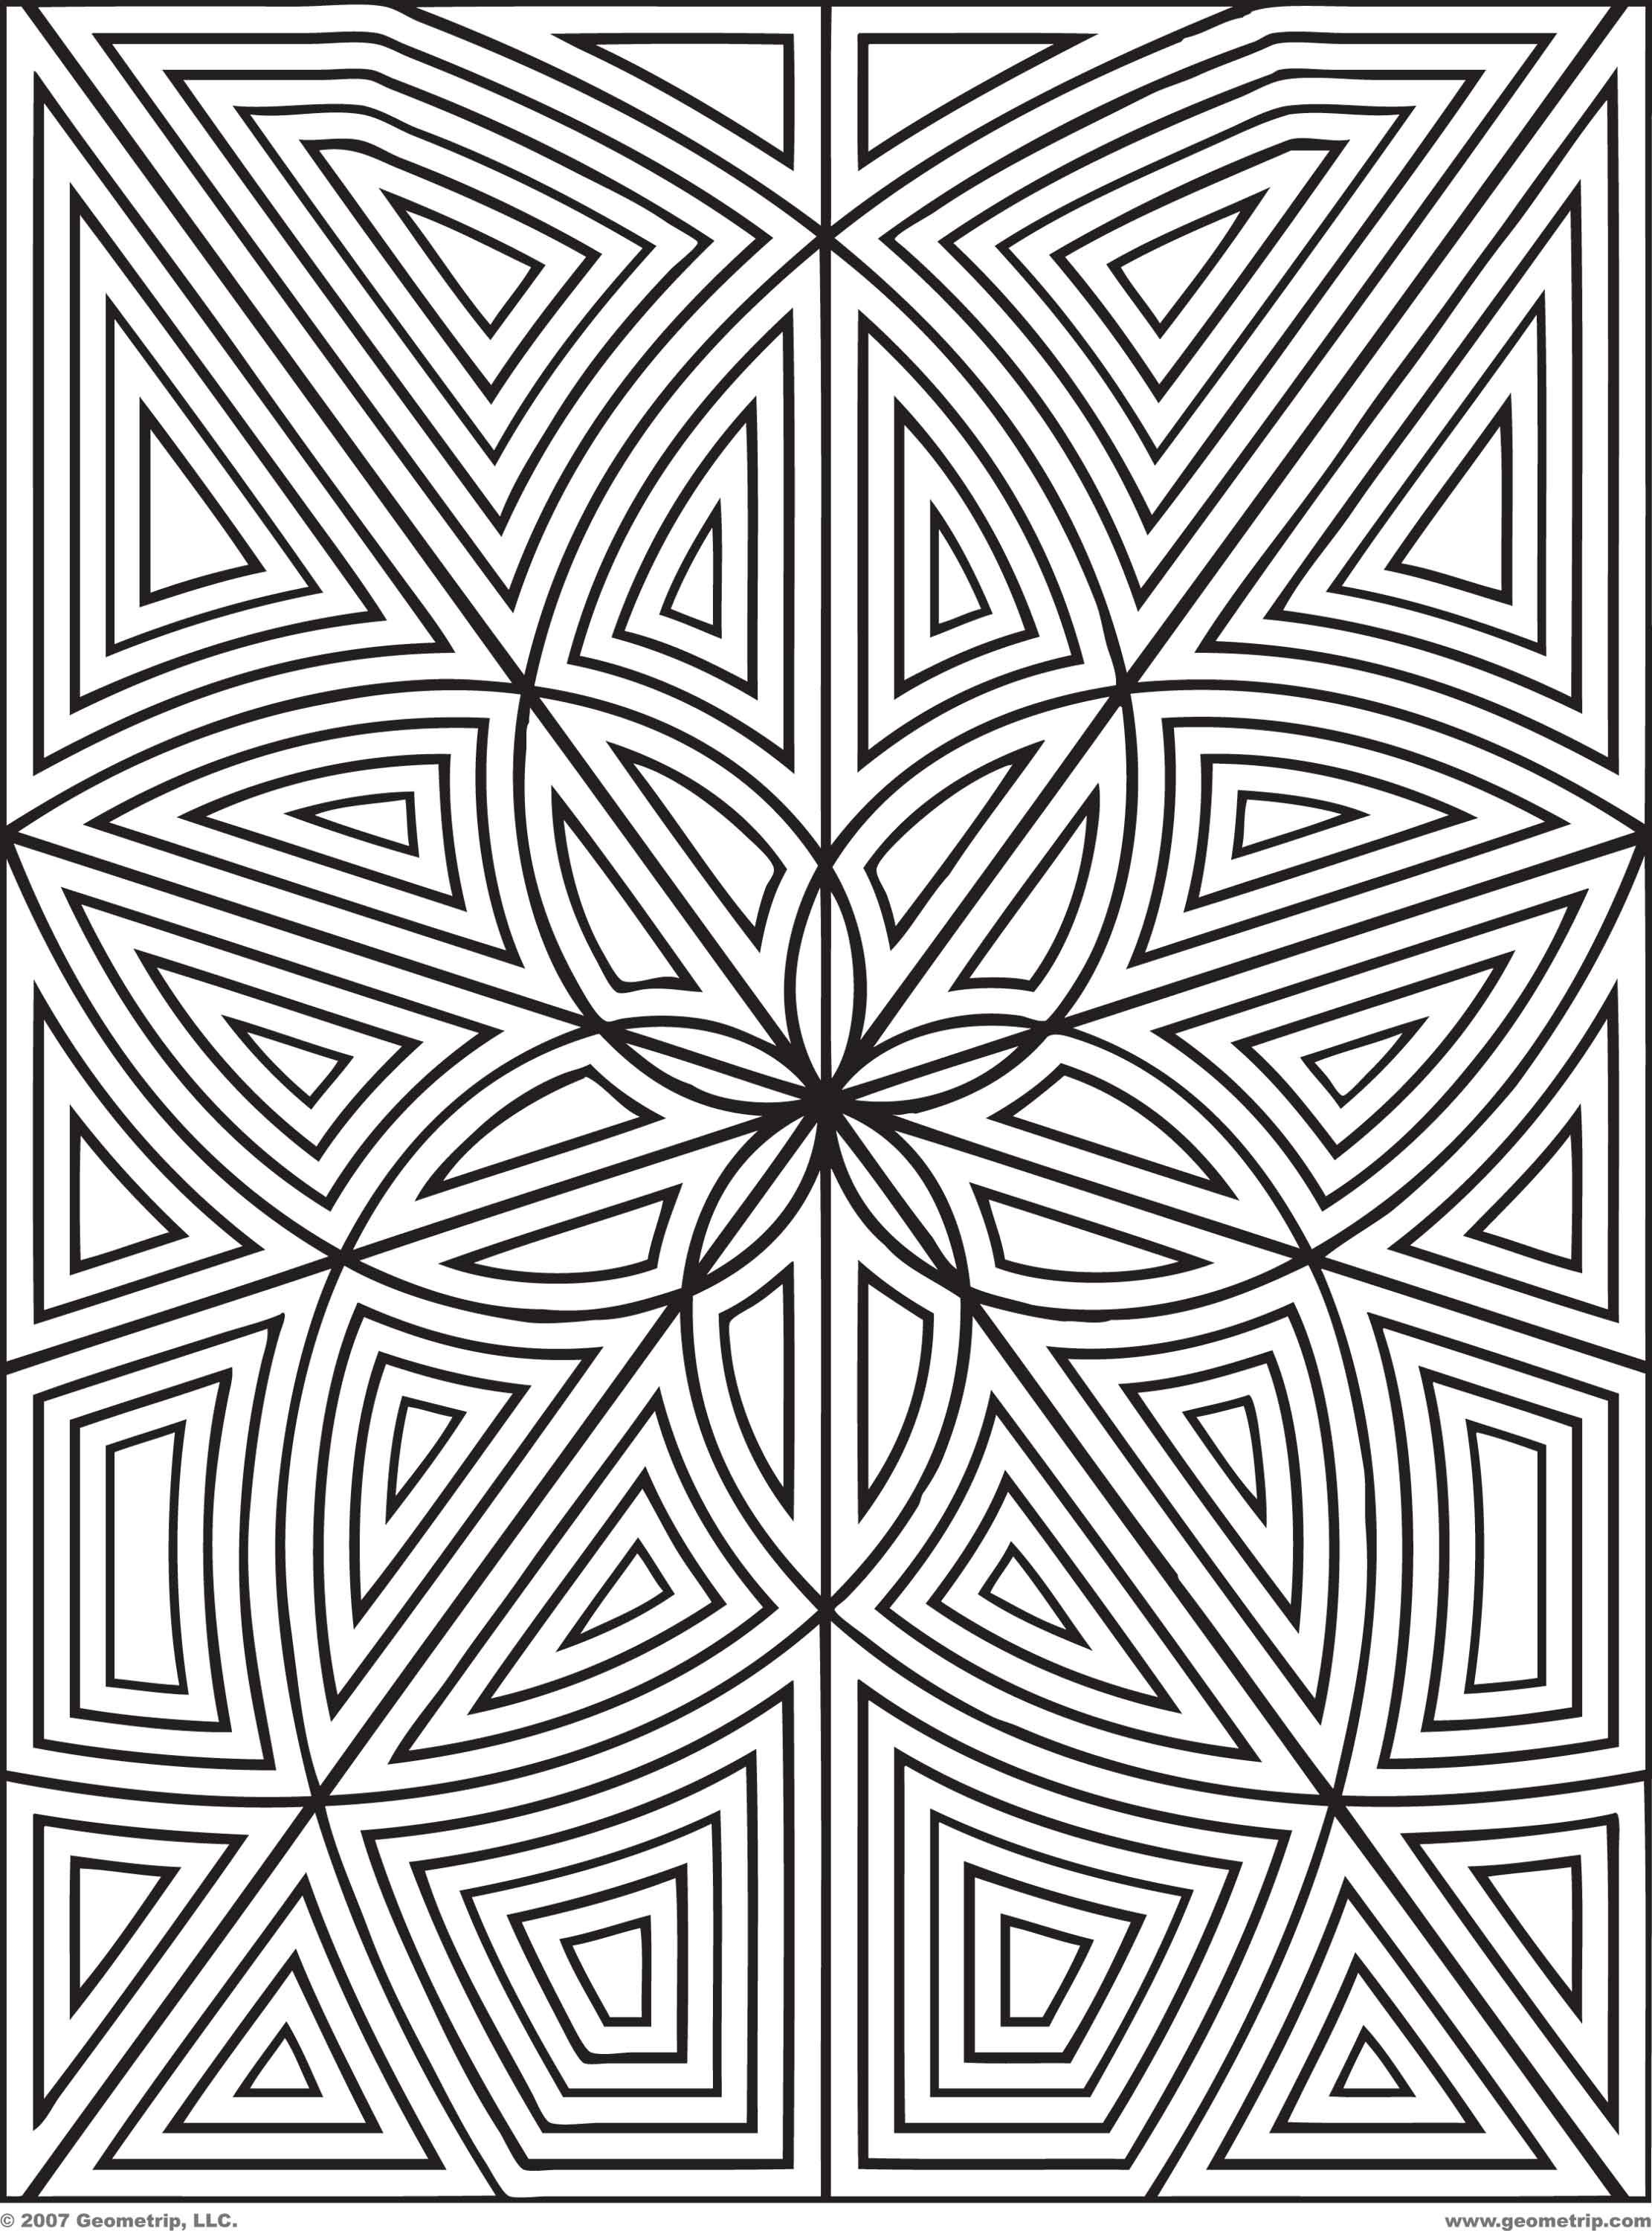 Free coloring pages kaleidoscope designs - Free Coloring Pages Kaleidoscope Designs Subjects Kaleidoscope Coloring Pages For Adults 4 Widetheme